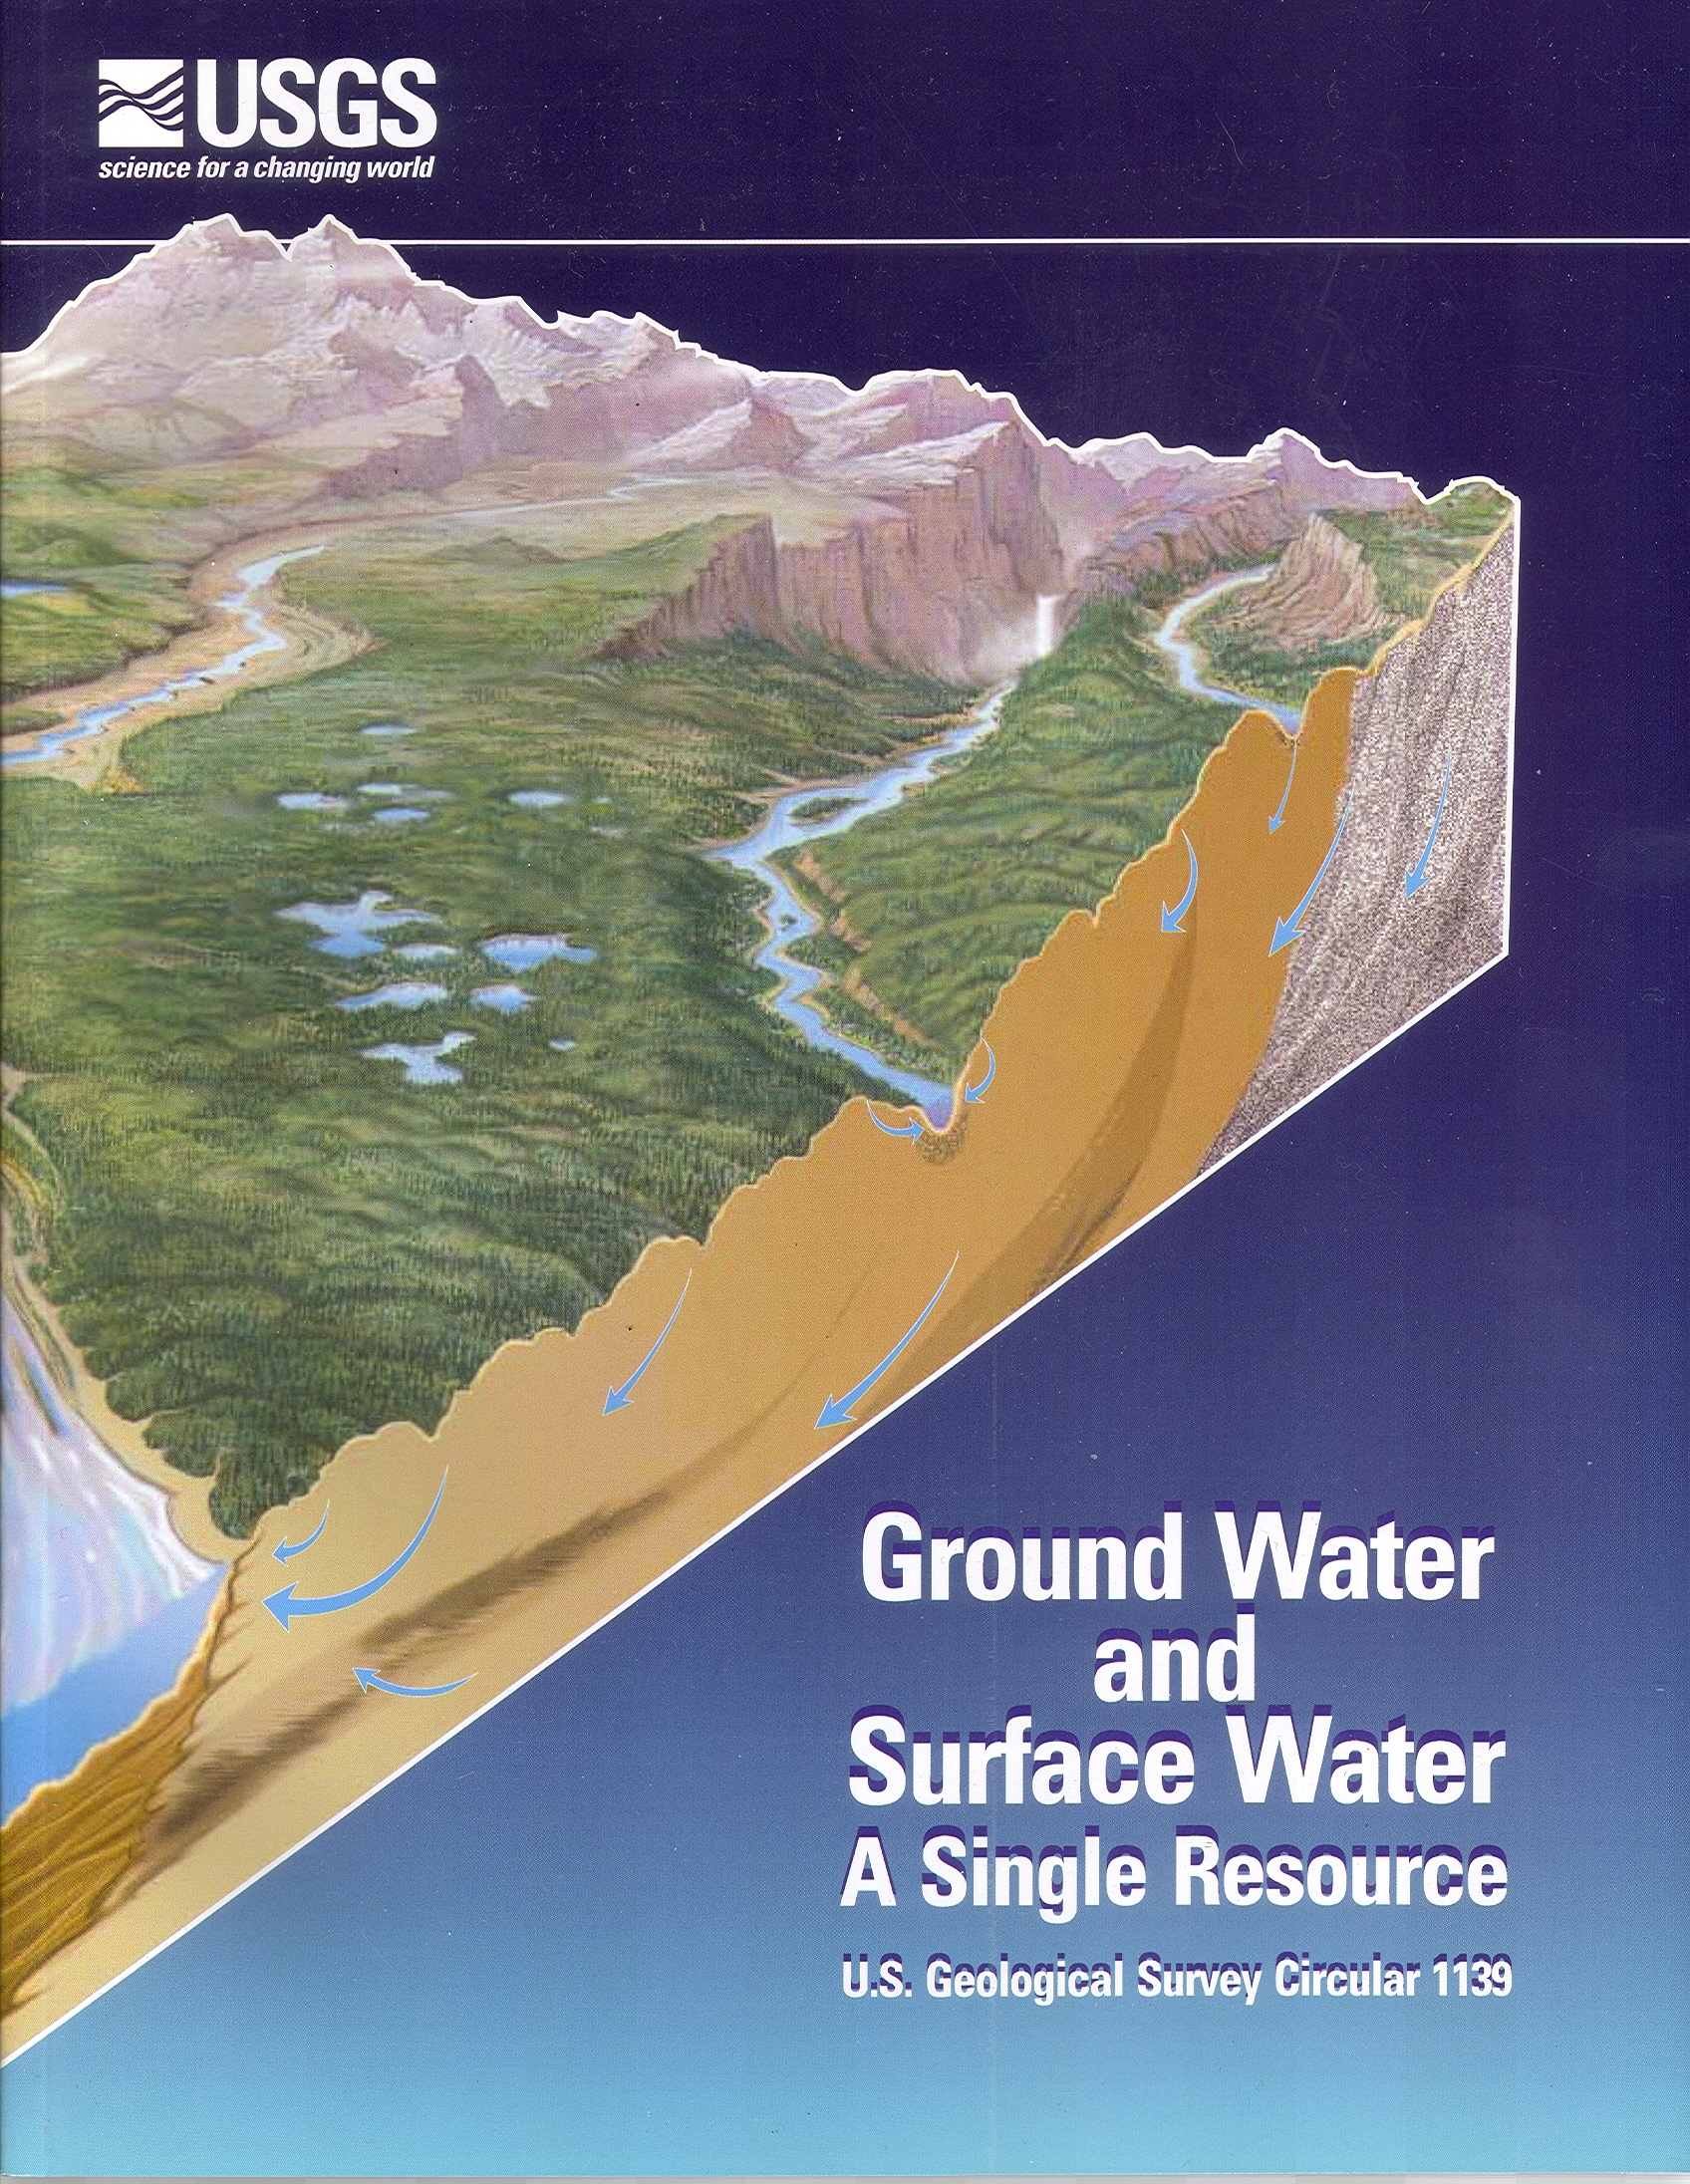 GROUND WATER AND SURFACE WATER; A